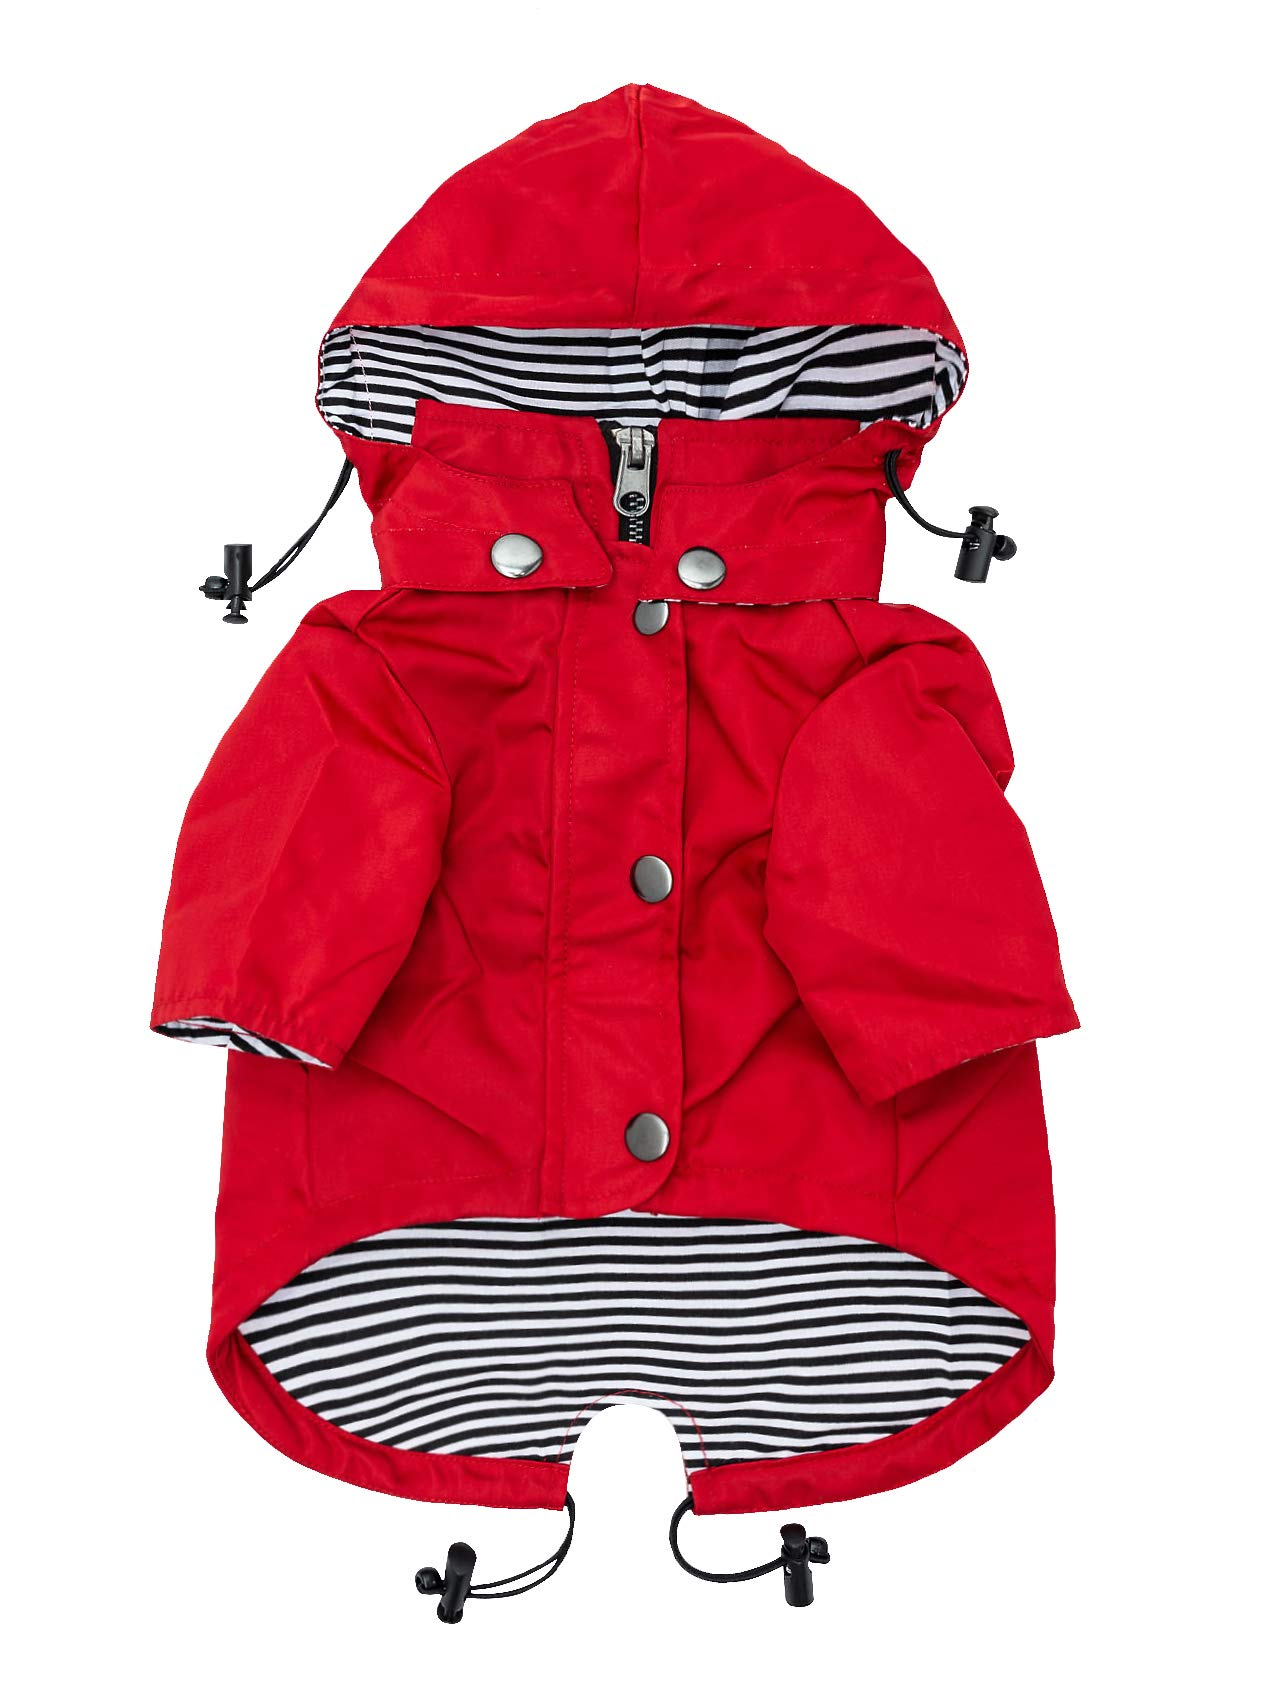 Ellie Dog Wear Red Zip Up Dog Raincoat with Reflective Buttons, Pockets, Rain/Water Resistant, Adjustable Drawstring, Removable Hoodie - Size XS to XXL Available - Stylish Premium Dog Raincoats (M)